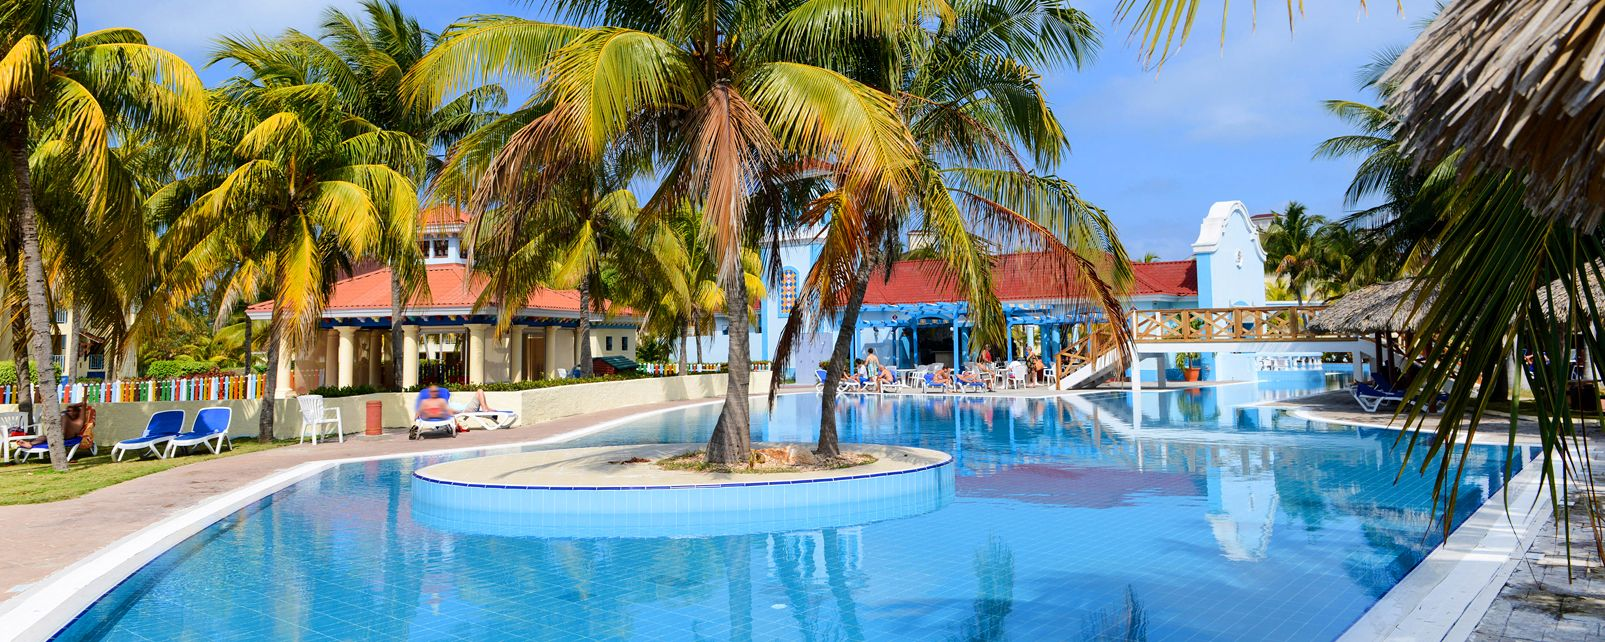 Best Hotel In Varadero For Couples